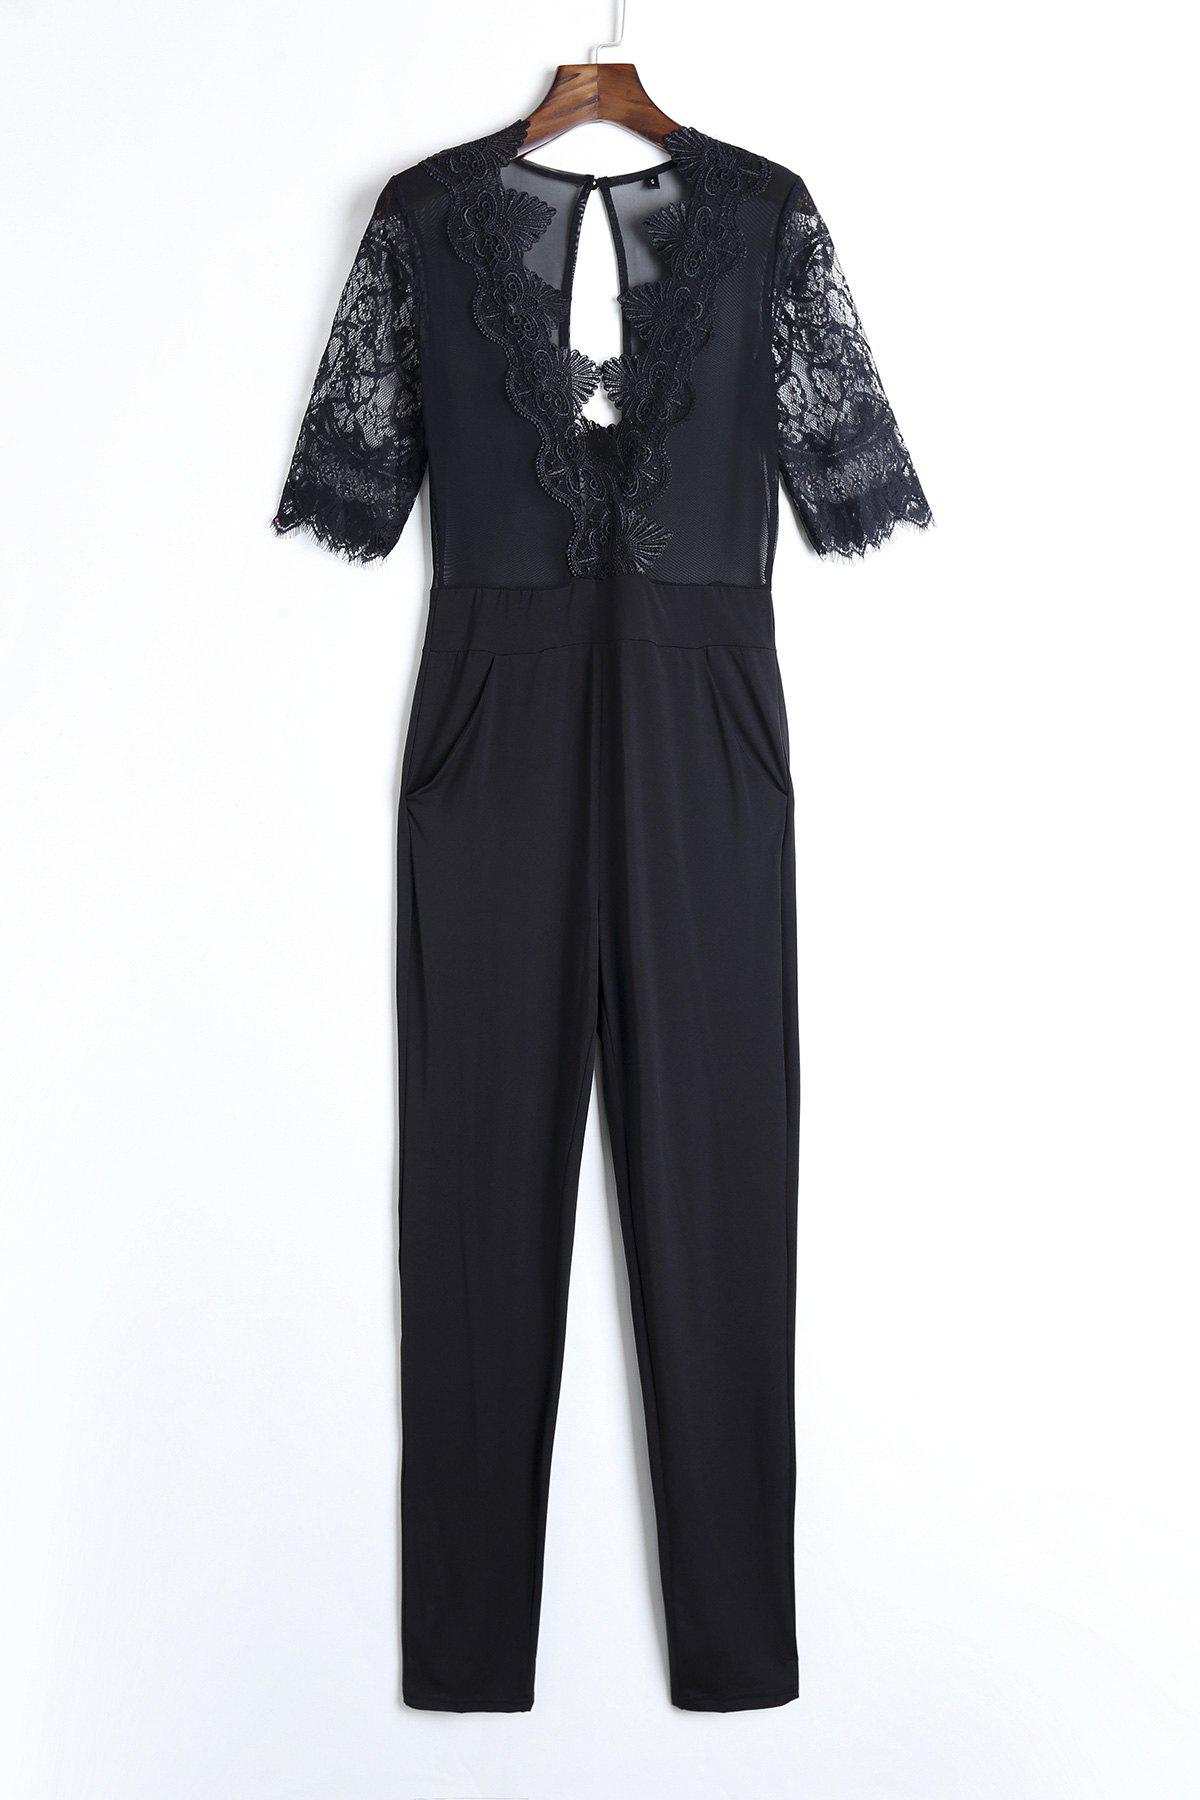 Sexy Plunging Neck Half Sleeve See-Through Lace Splicing Women's Black Jumpsuit - BLACK S